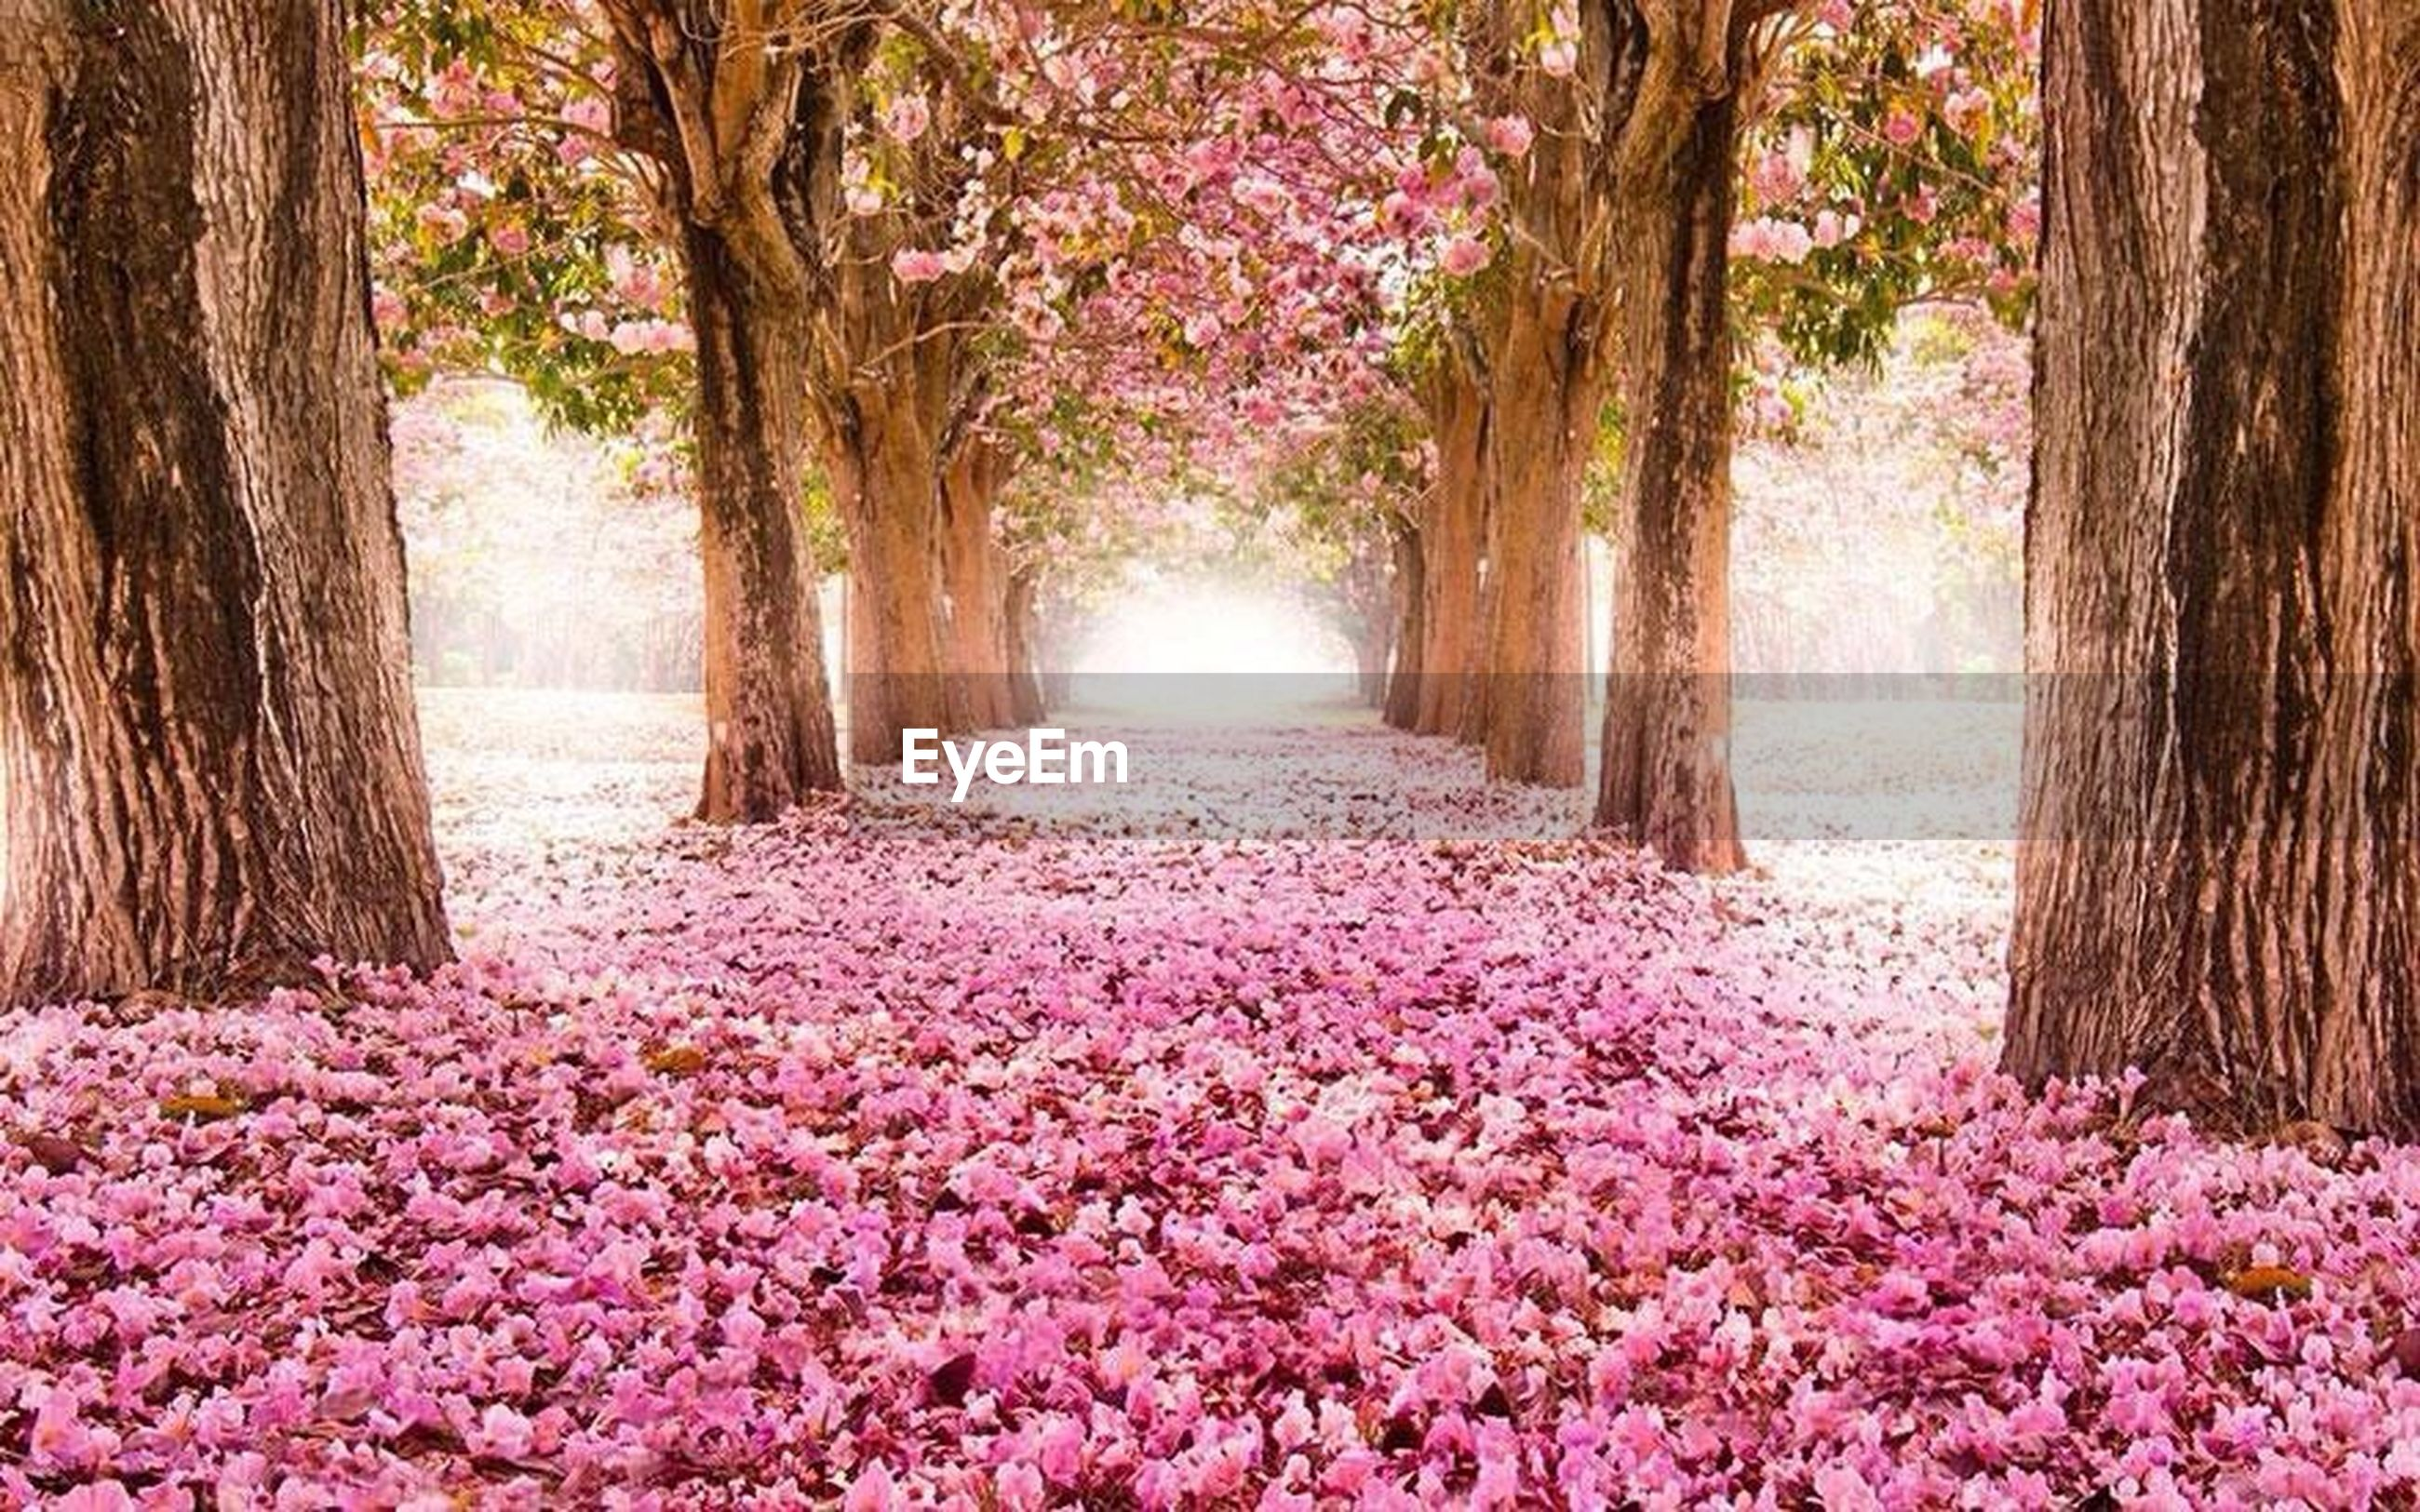 flower, tree, freshness, fragility, beauty in nature, growth, blossom, nature, pink color, abundance, the way forward, season, branch, tree trunk, petal, springtime, cherry blossom, in bloom, park - man made space, blooming